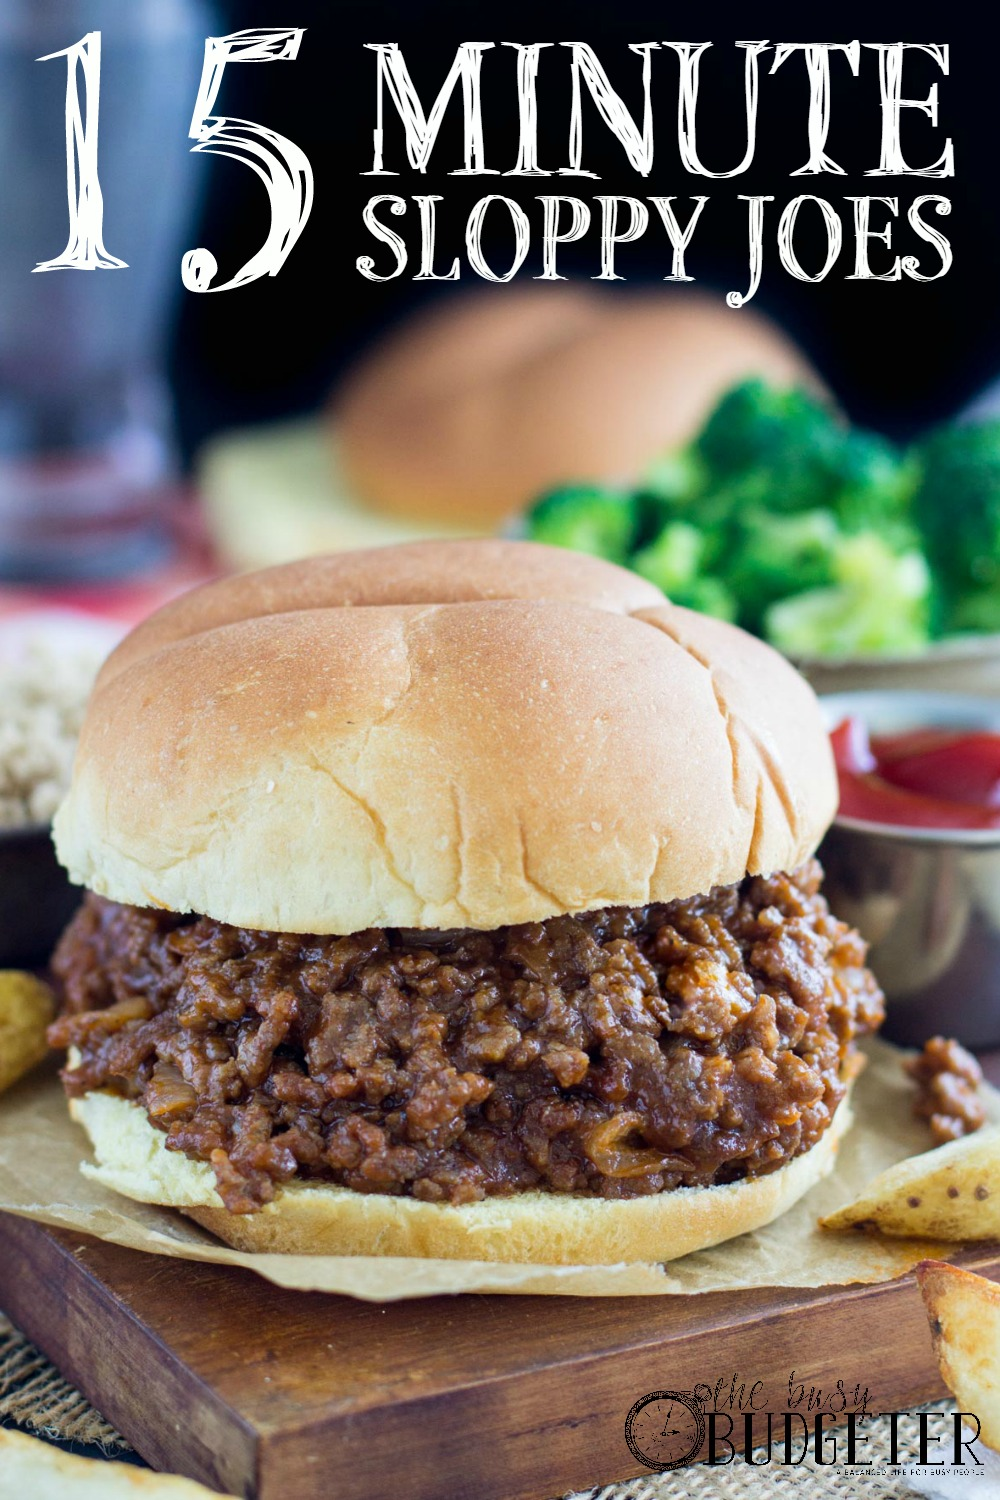 15 minute sloppy joes-Jaw drop. These were amazing! My husband ate half the batch! They were so easy to make too and I'm a terrible cook. **Save for later